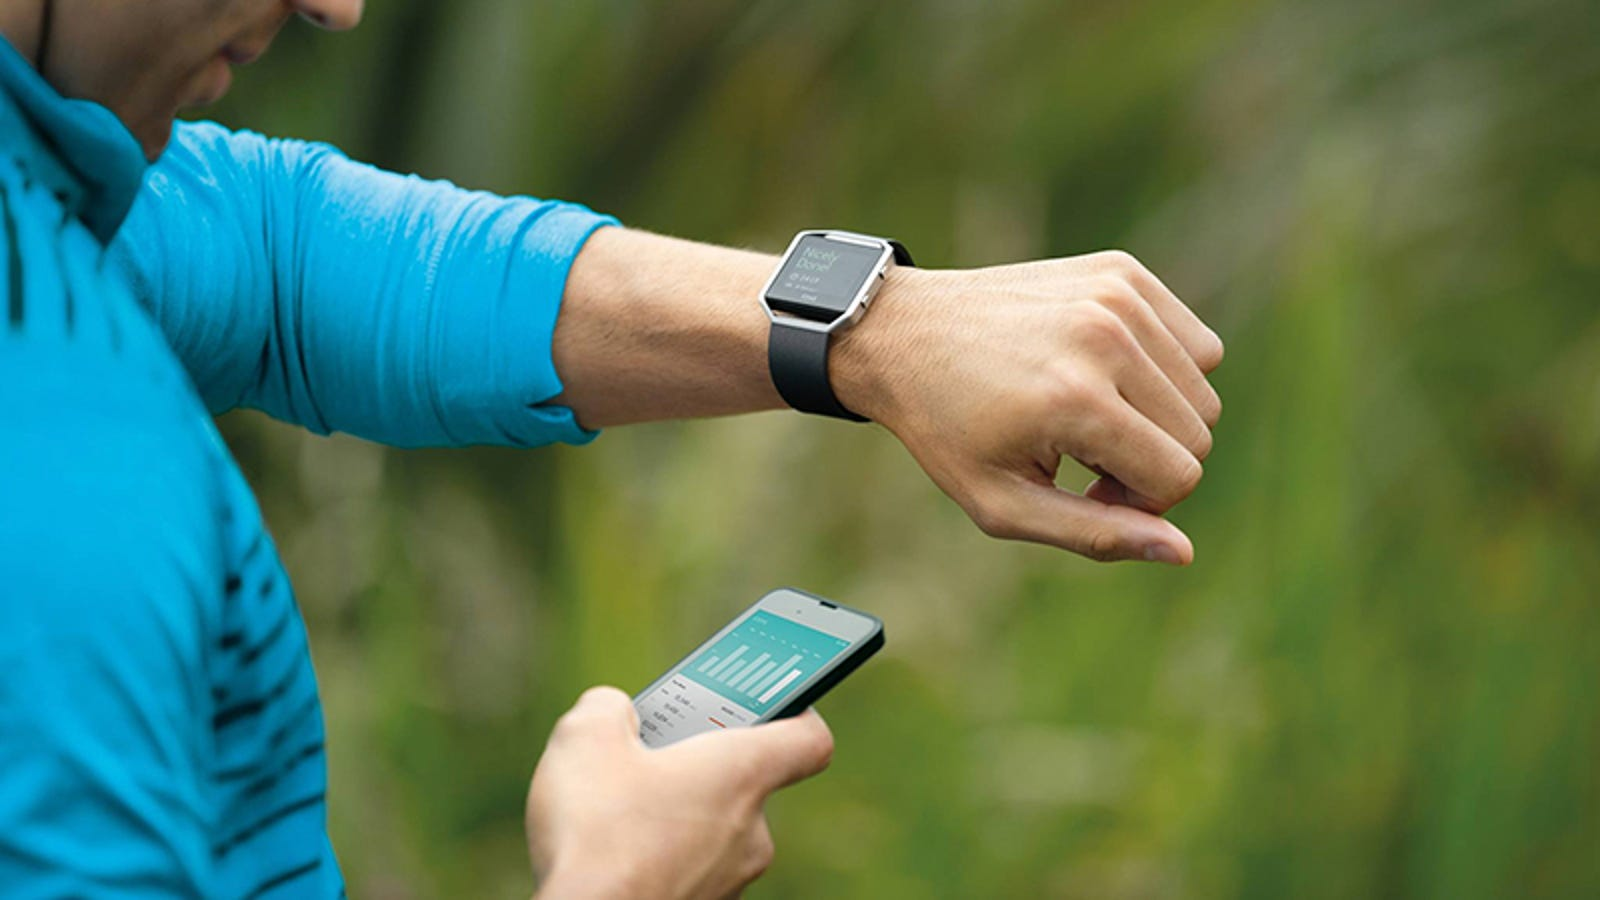 How To Get All Your Fitness Tracking Data in One Place